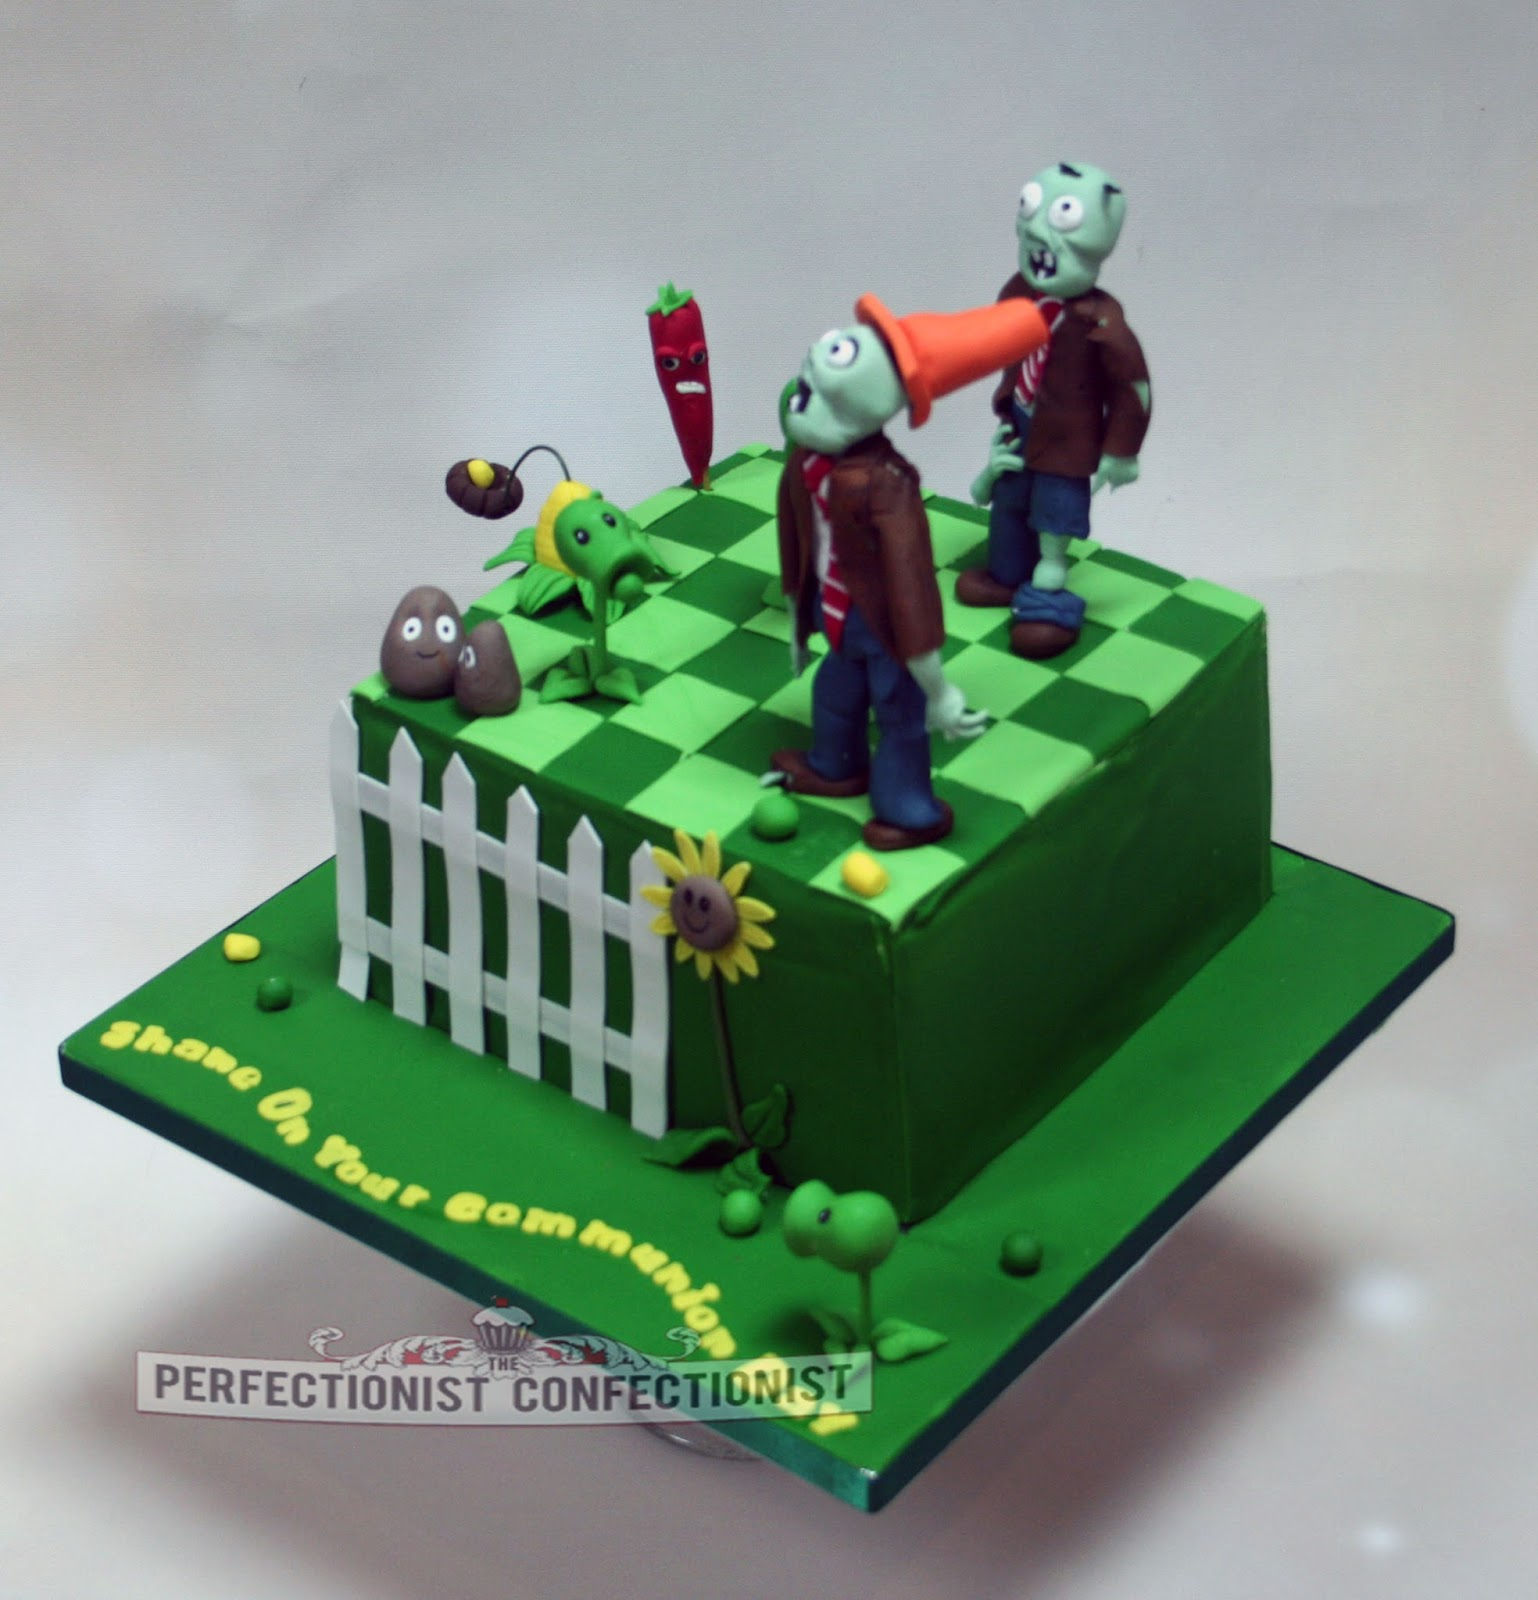 The Perfectionist Confectionist Shane Plants Vs Zombies